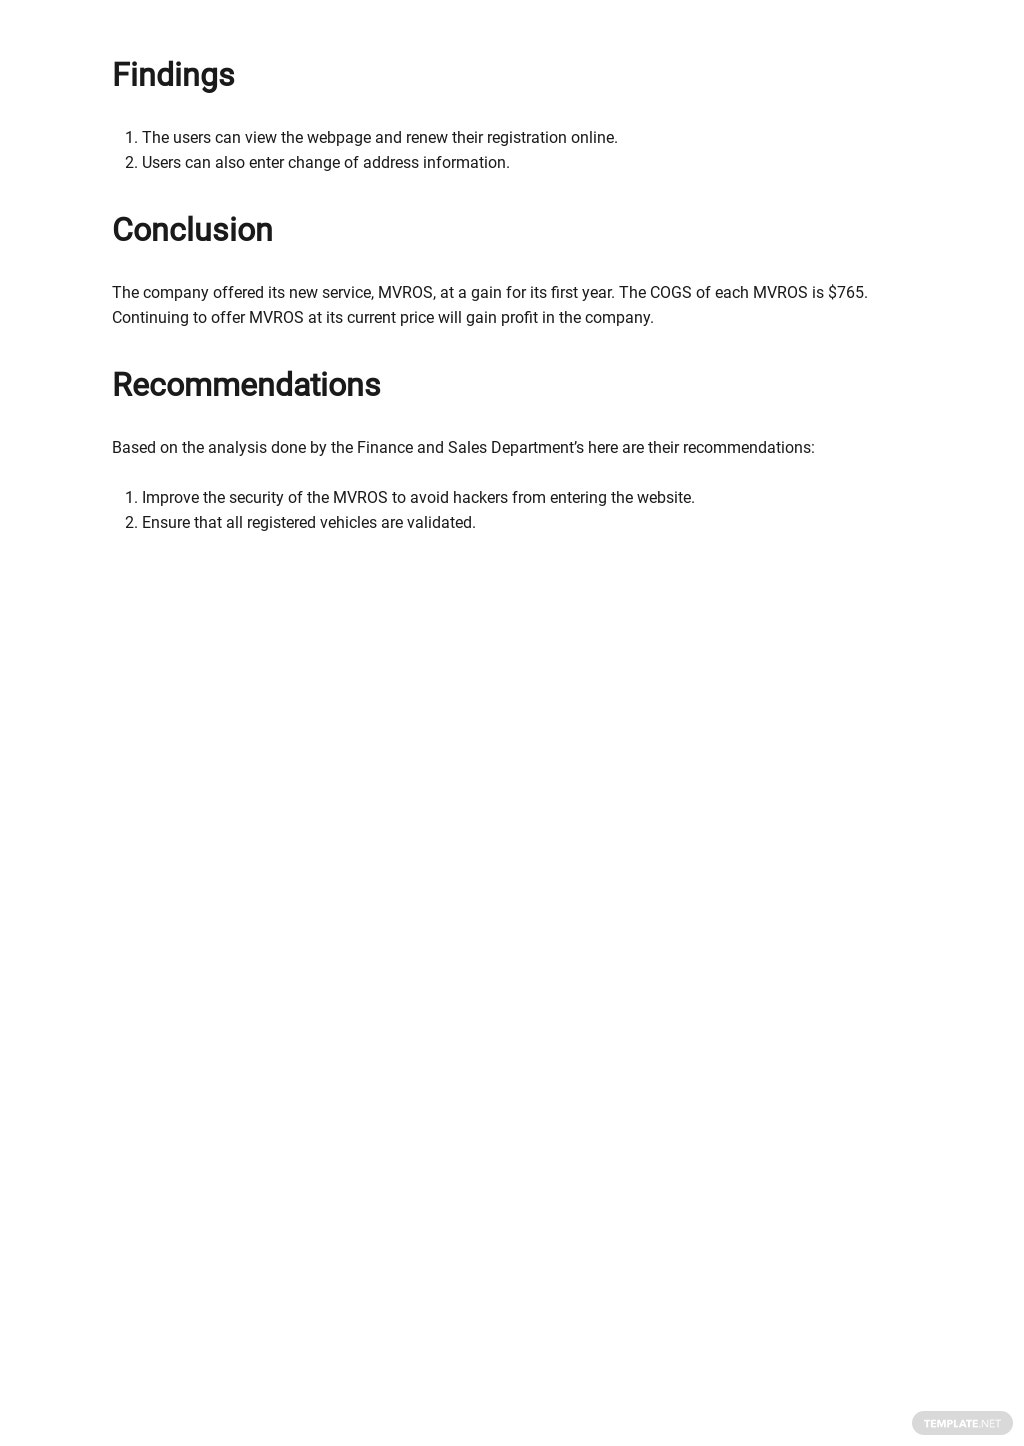 Security Assessment Report Template 3.jpe